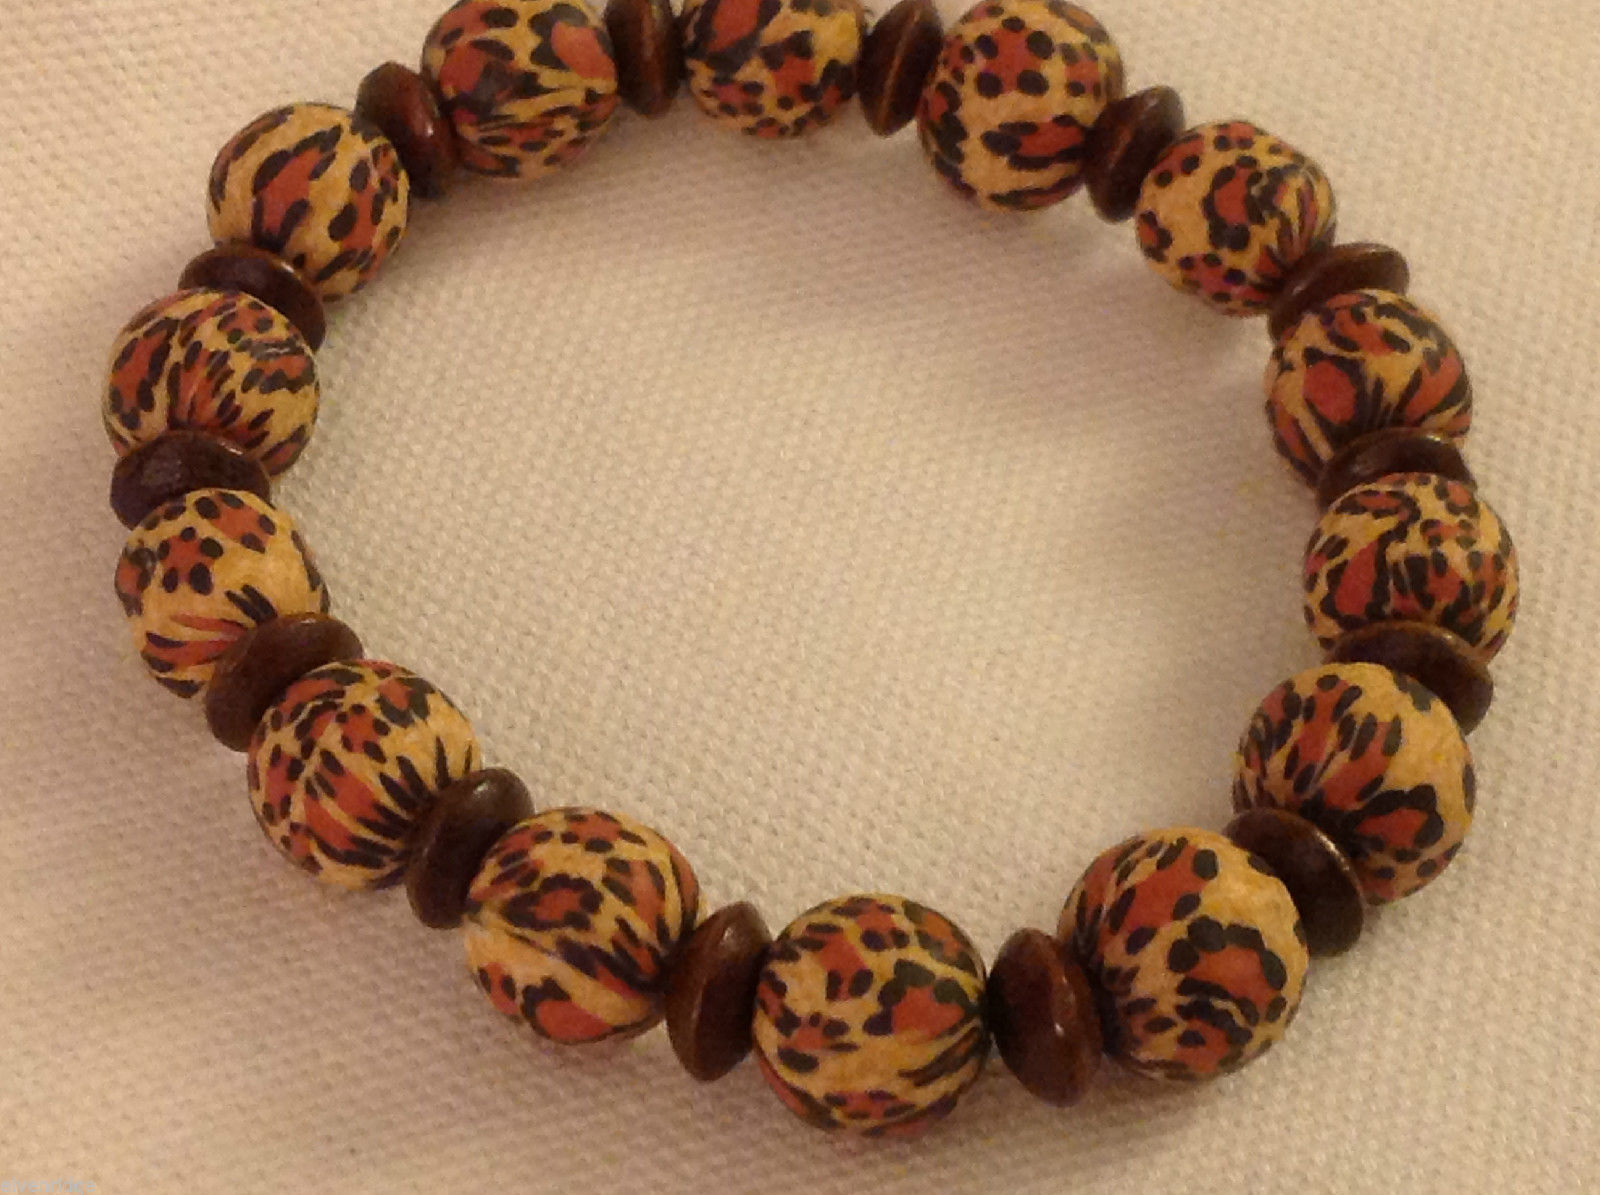 Leopard stripe stretchy bracelet with wood spacers made in USA